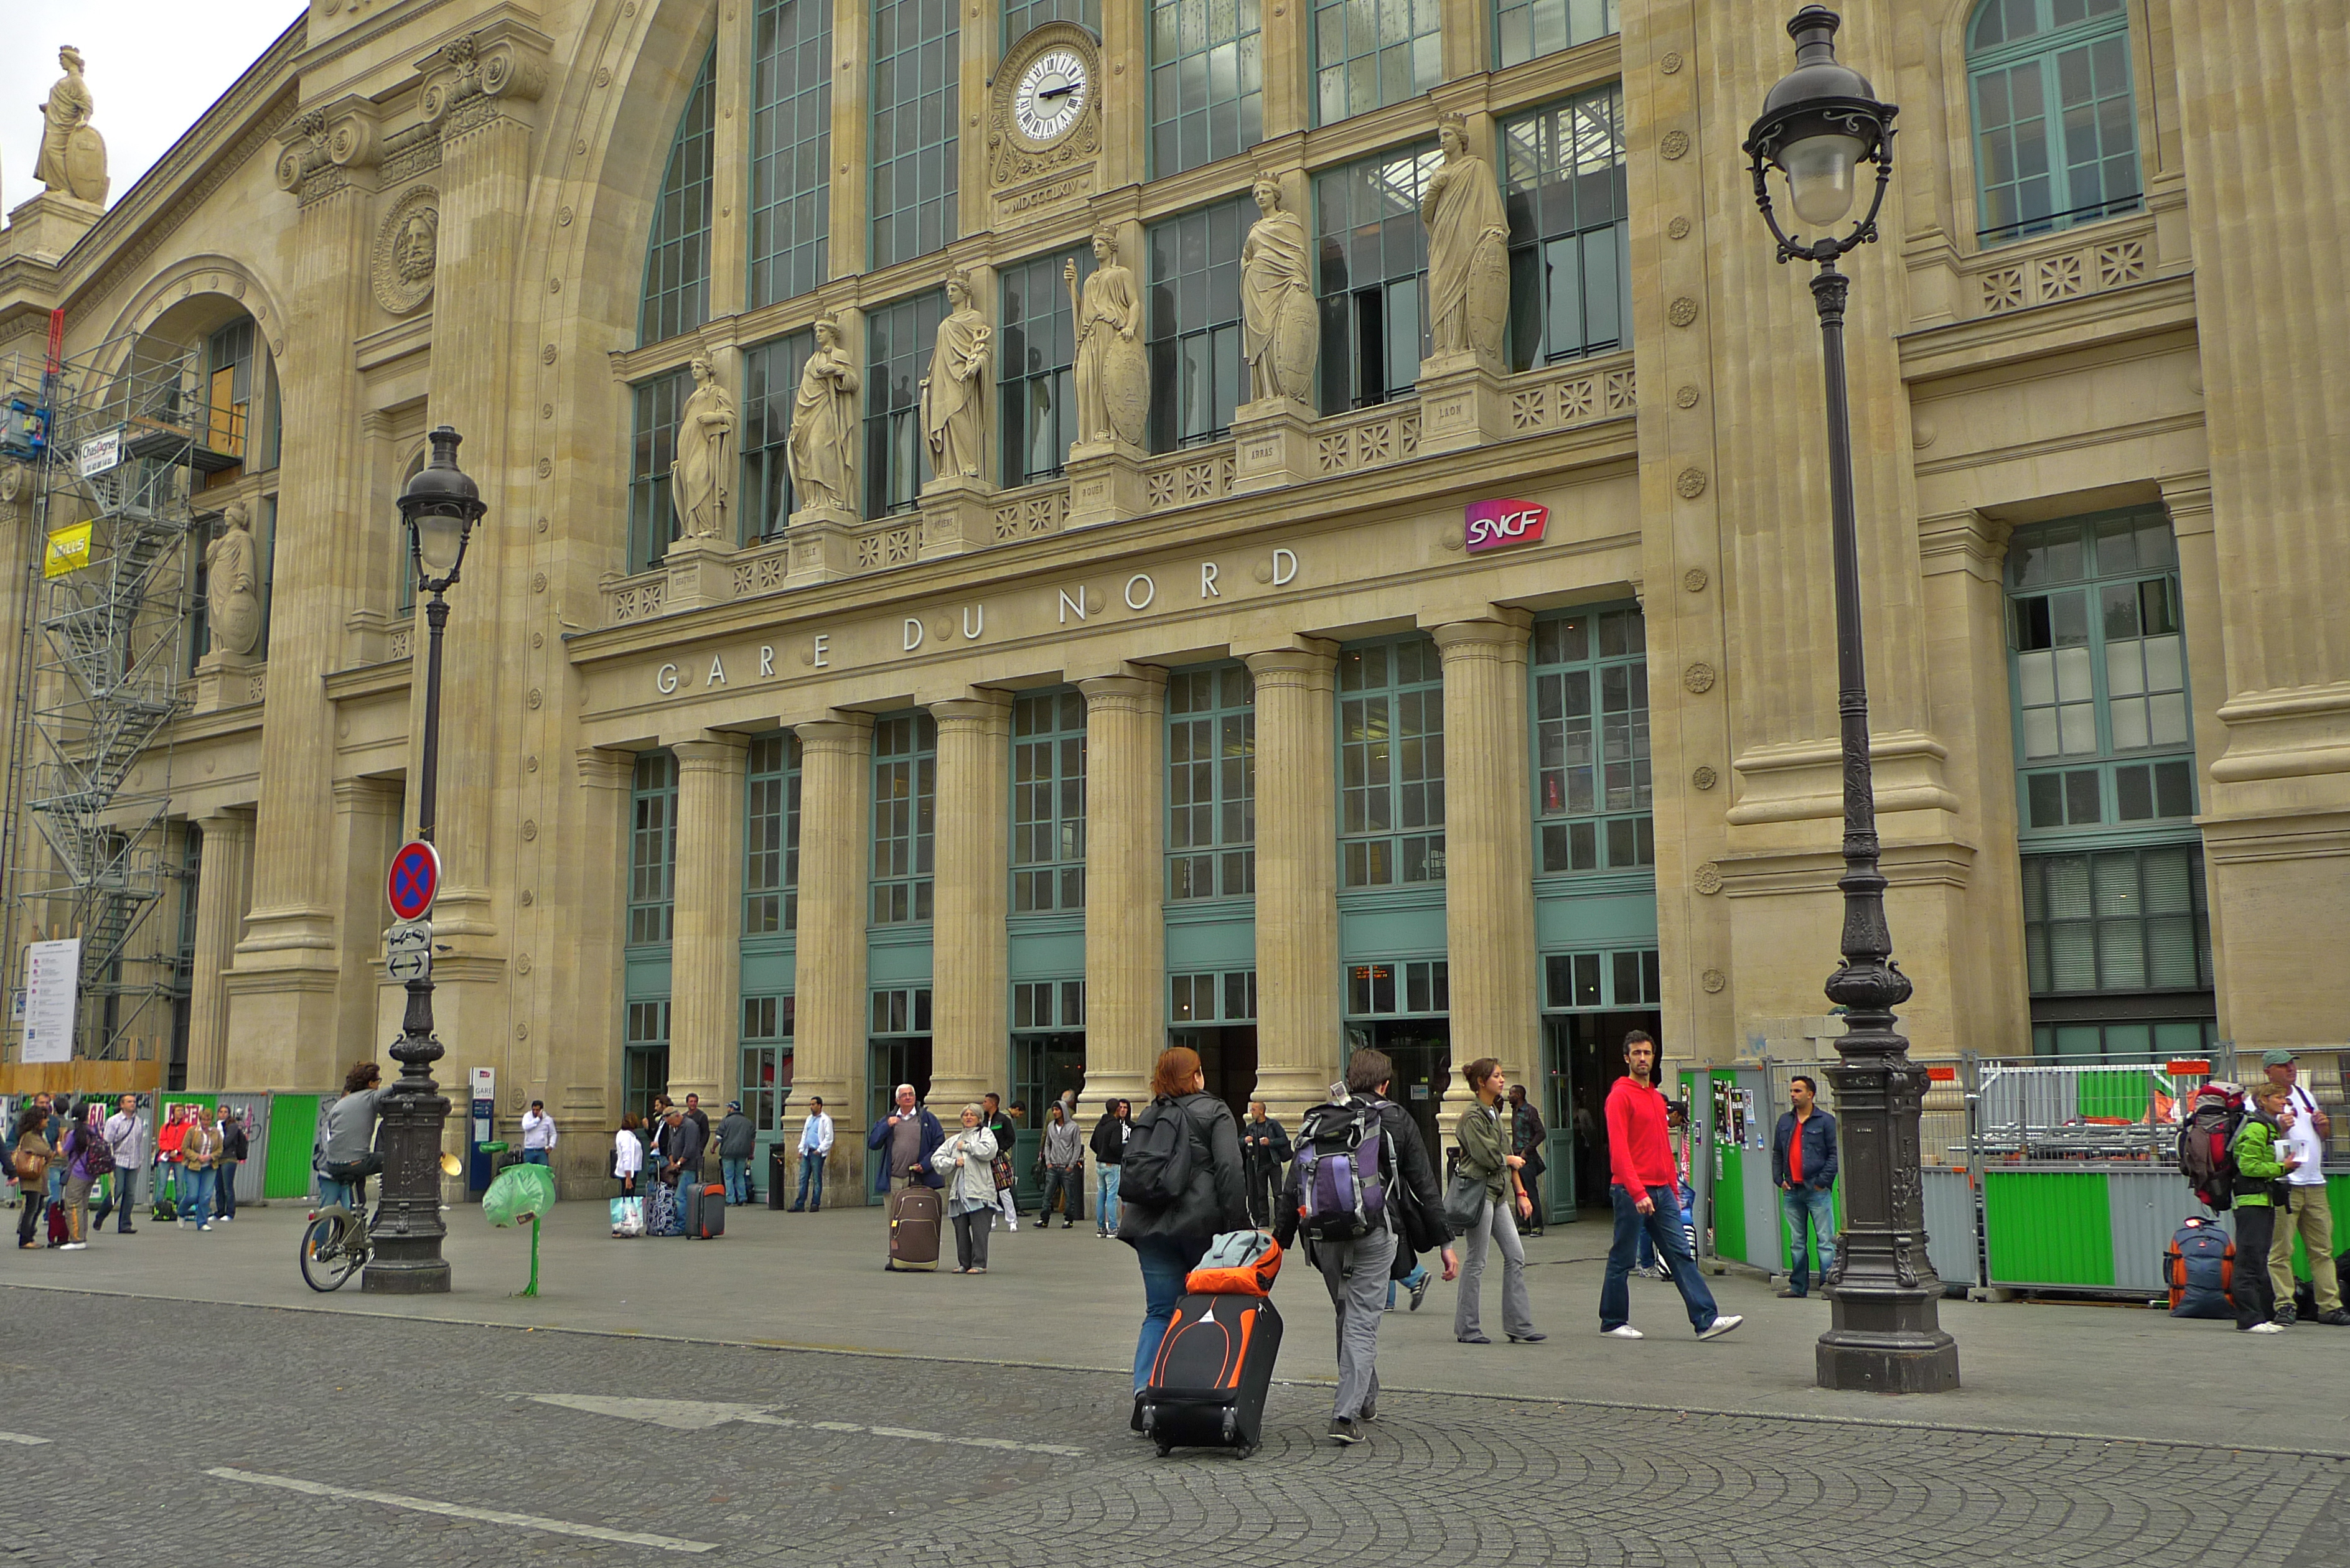 gare du nord soundlandscapes 39 blog. Black Bedroom Furniture Sets. Home Design Ideas